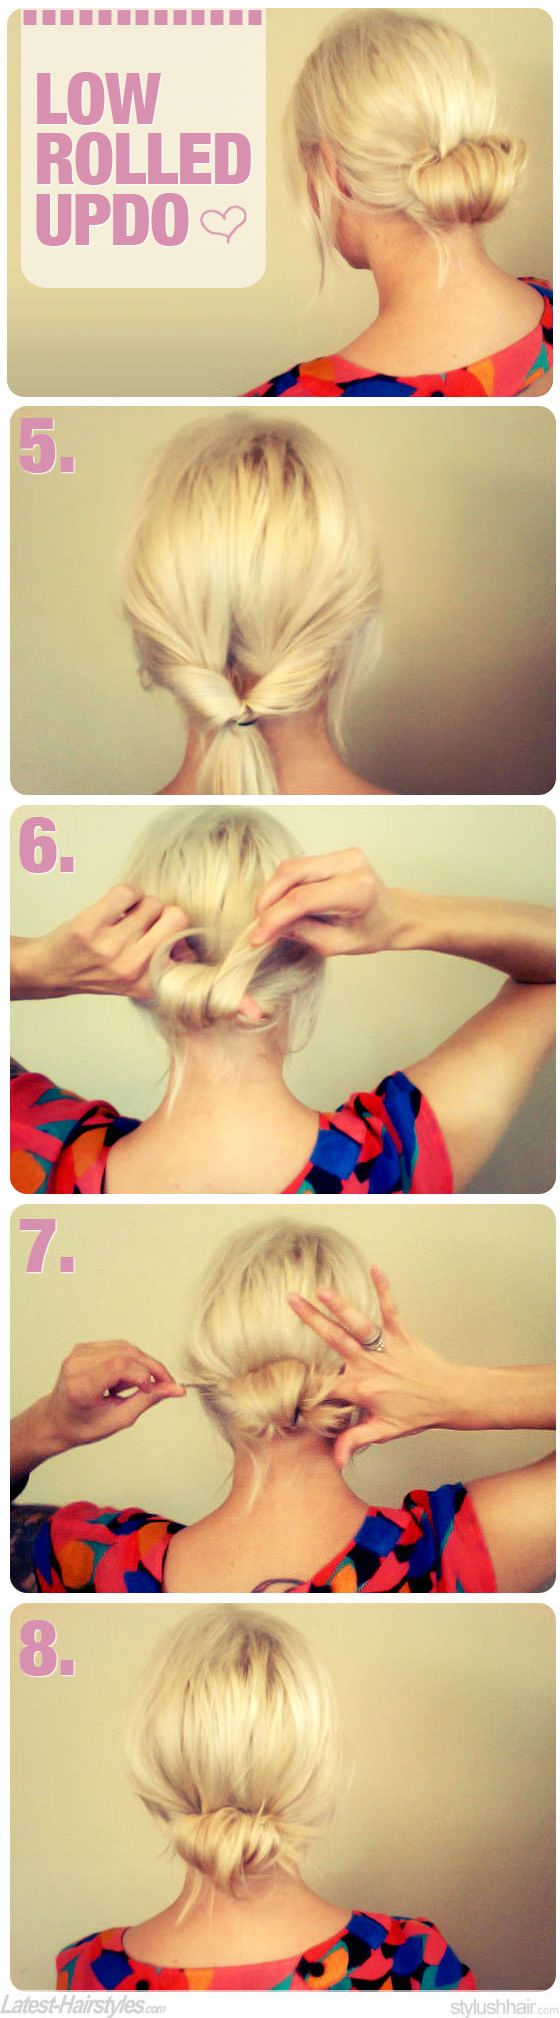 Low rolled updo very cute effing cute hair ideas pinterest